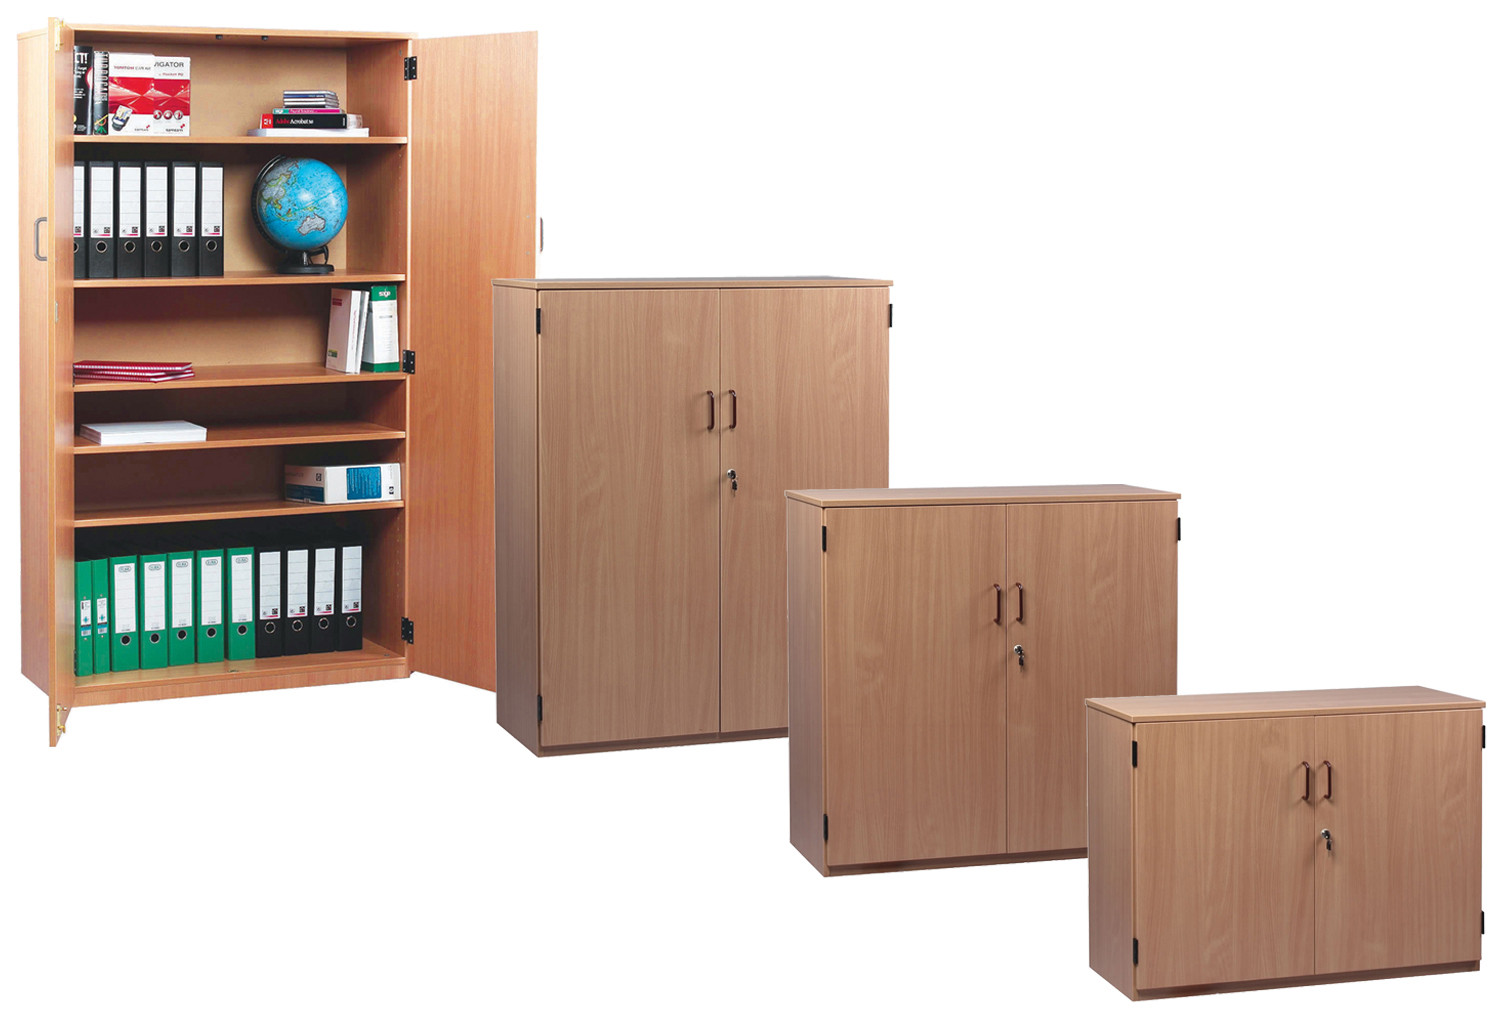 School cupboards